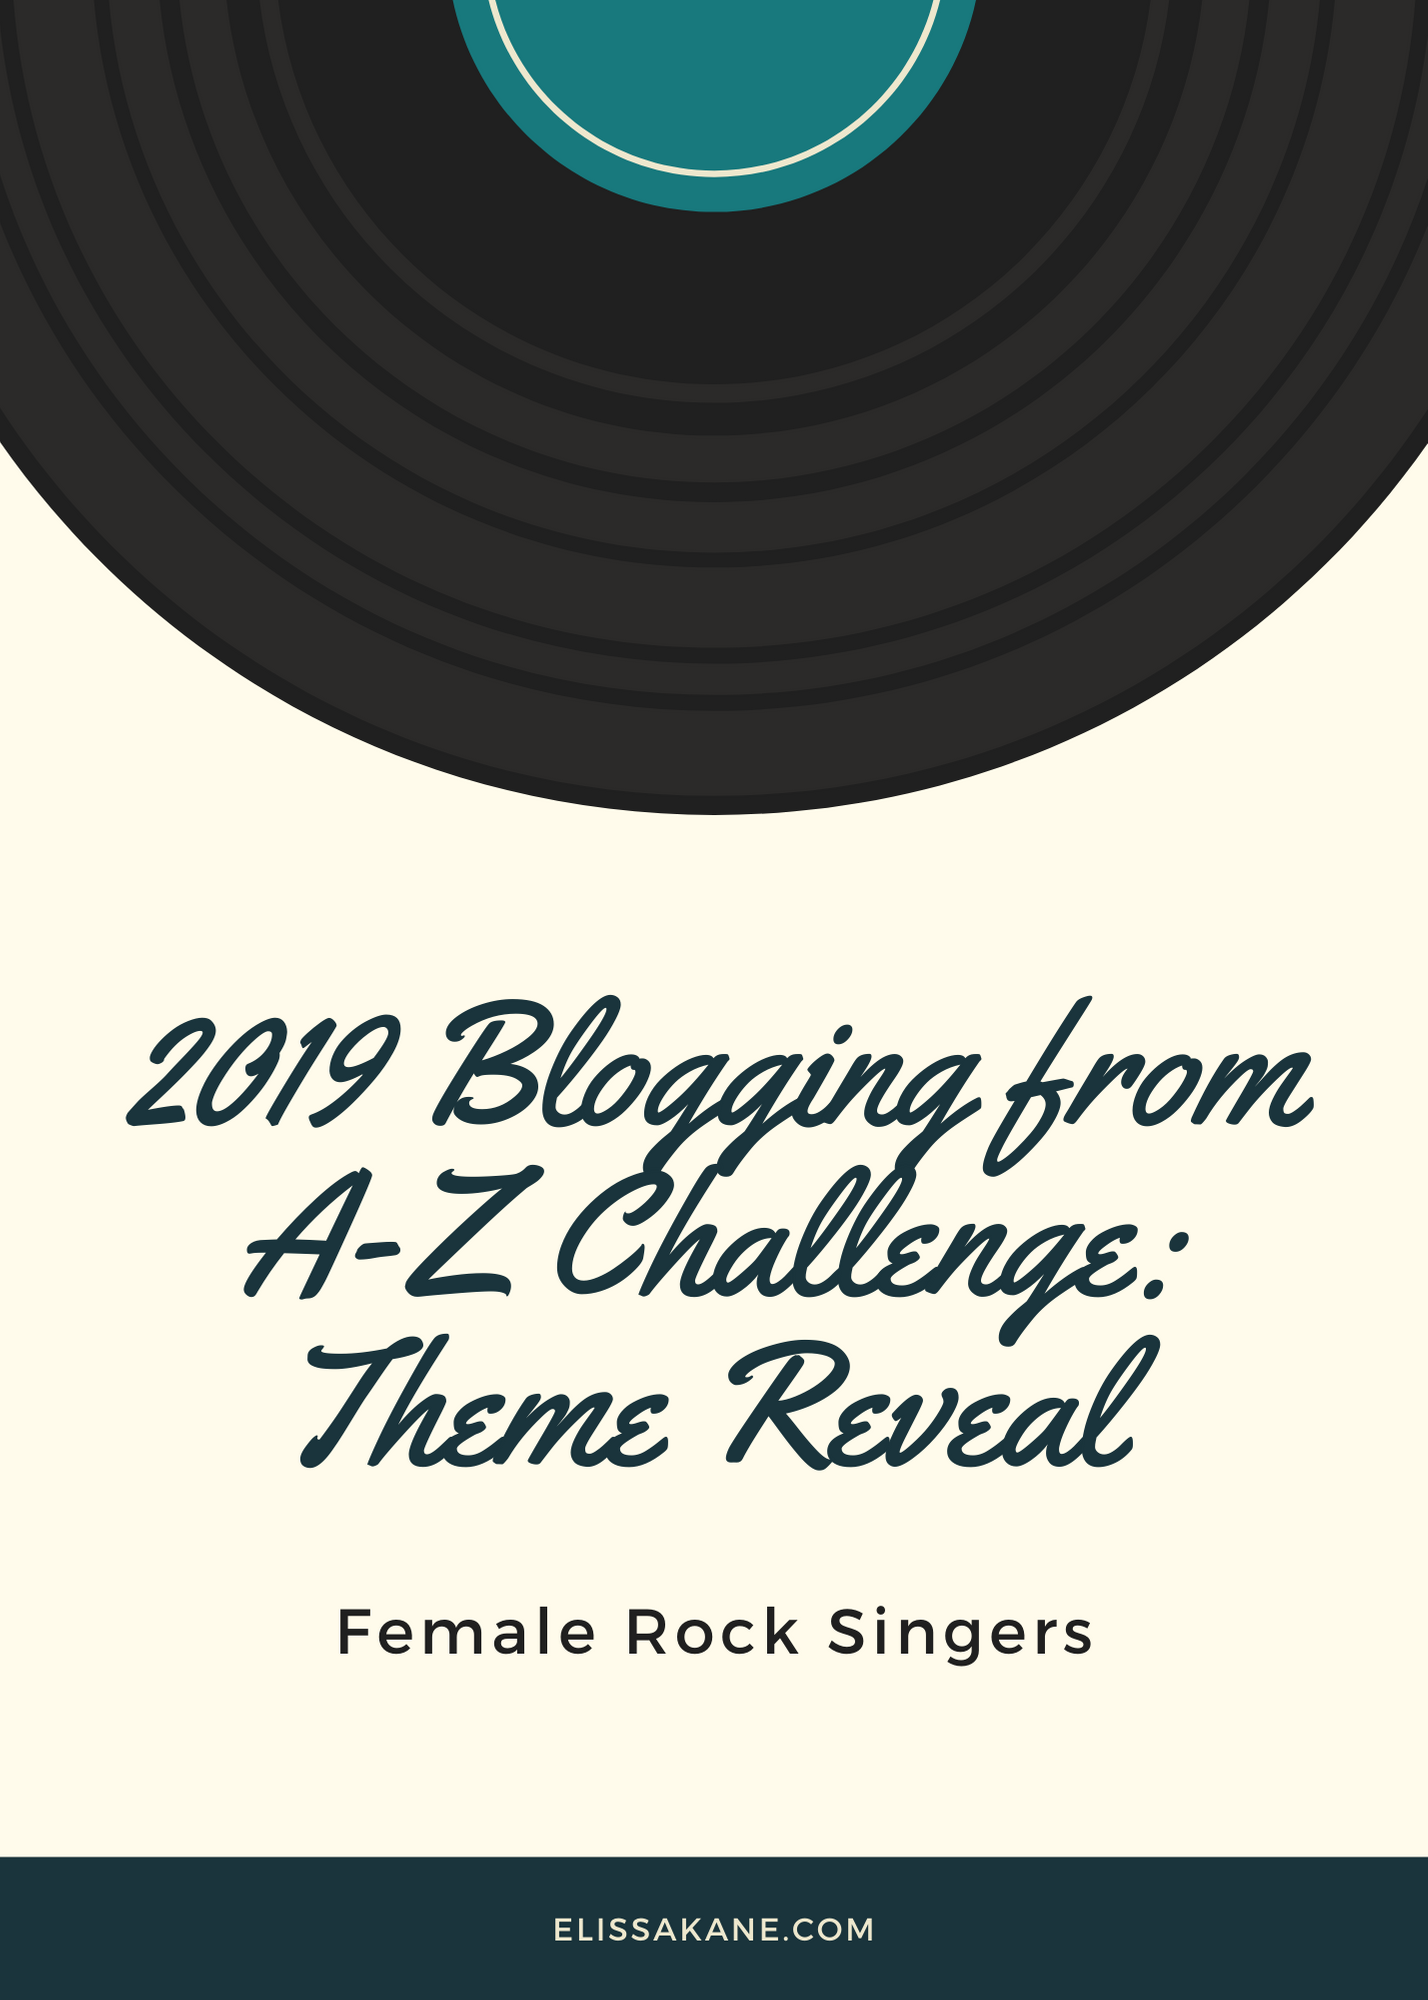 2019 Blogging from A-Z Challenge: Theme Reveal